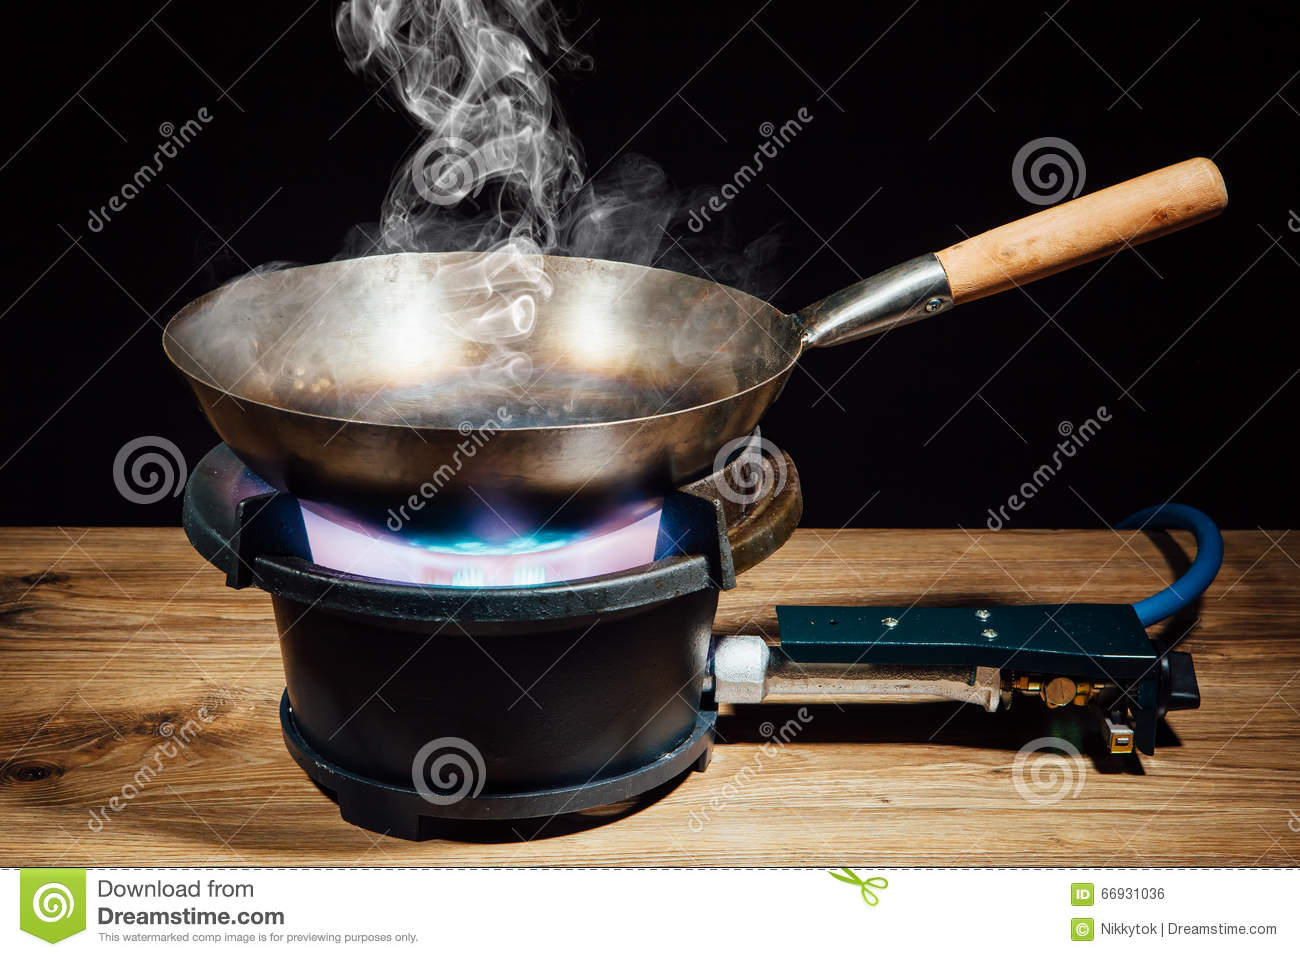 casserole chinoise de wok sur le br leur gaz du feu photo stock image 66931036. Black Bedroom Furniture Sets. Home Design Ideas